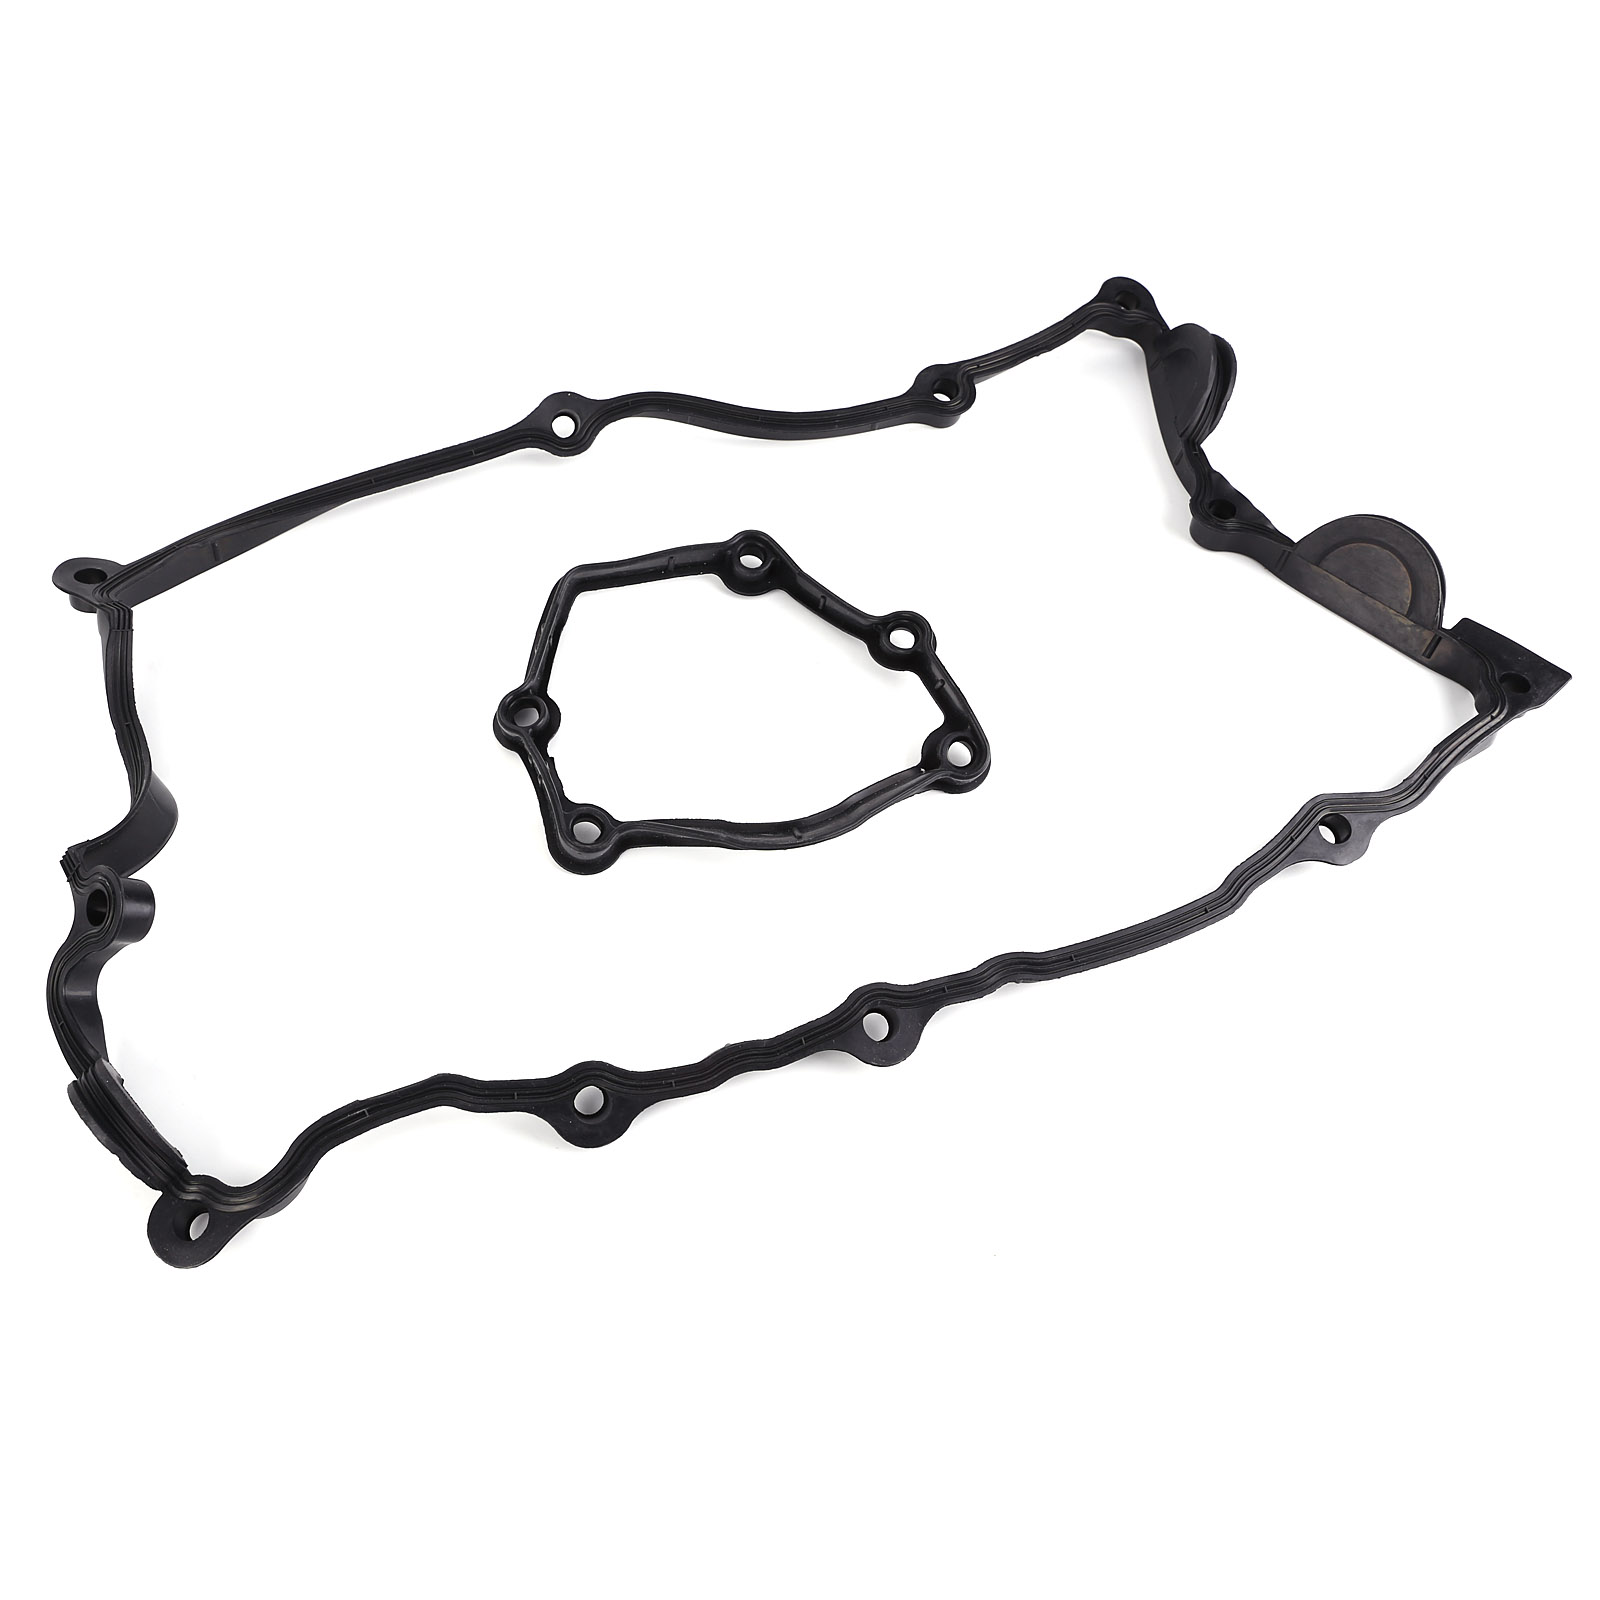 For Bmw E46 Rocker Cover Gasket Set For 316i 316ci 316ti